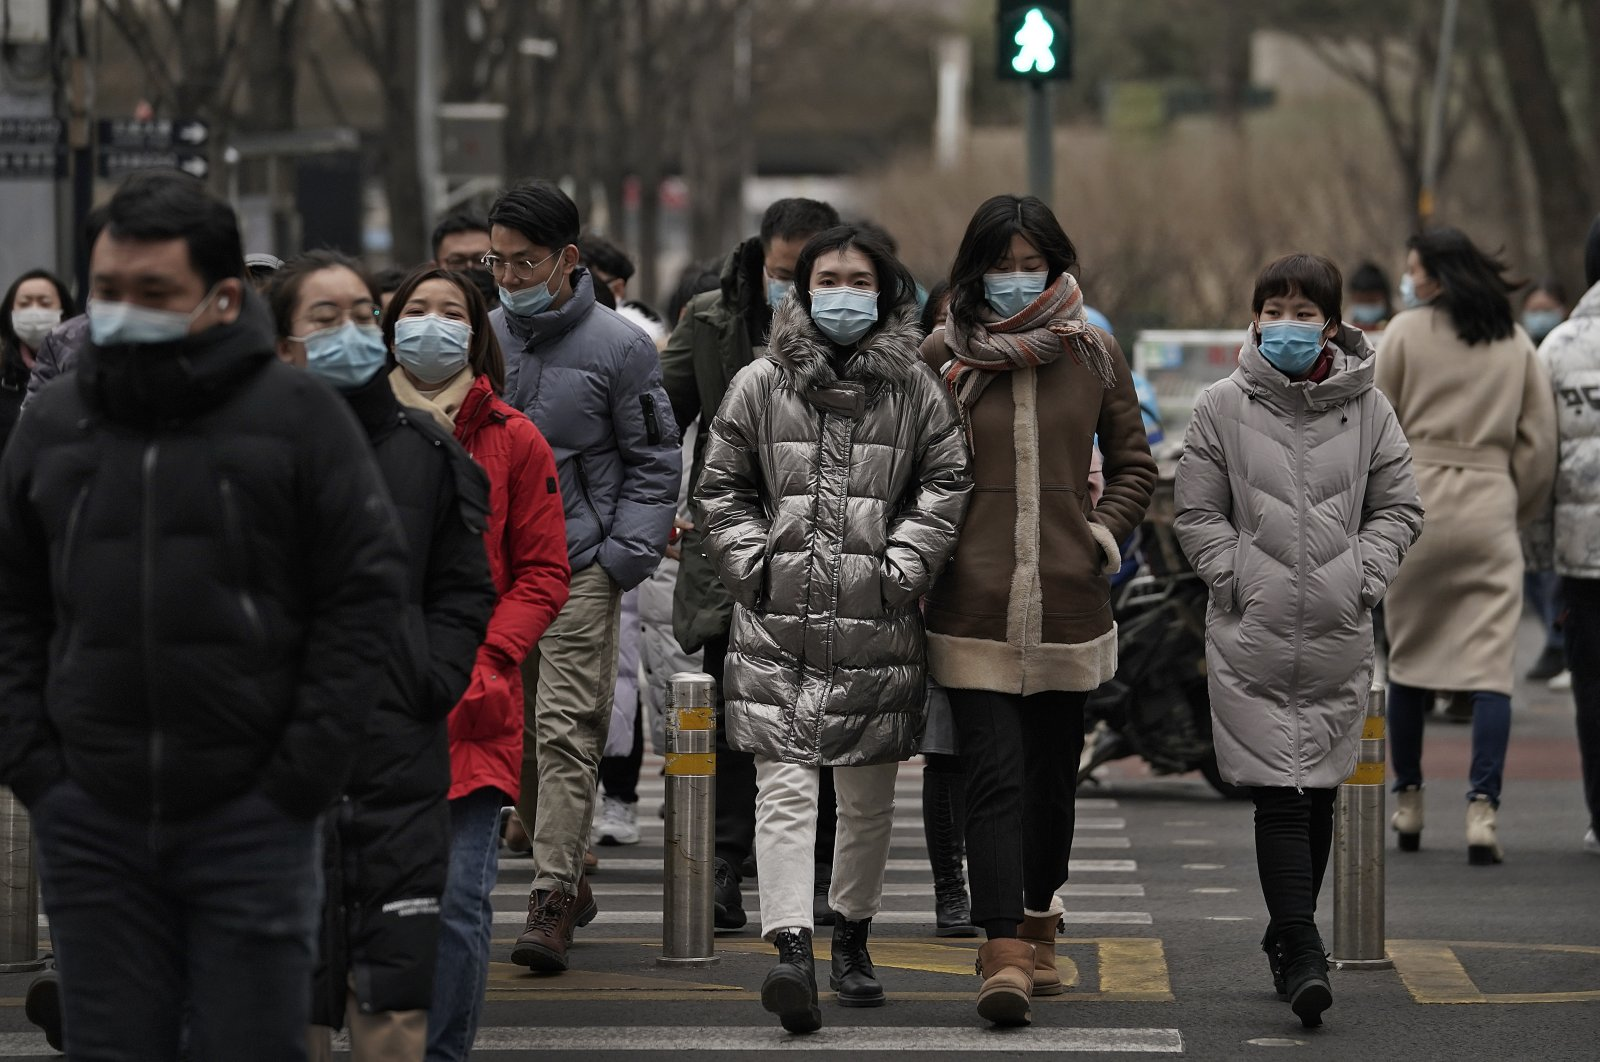 People wearing masks to help curb the spread of the coronavirus walk across a street during a lunch break, Beijing, China, Jan. 14, 2021. (AP Photo)